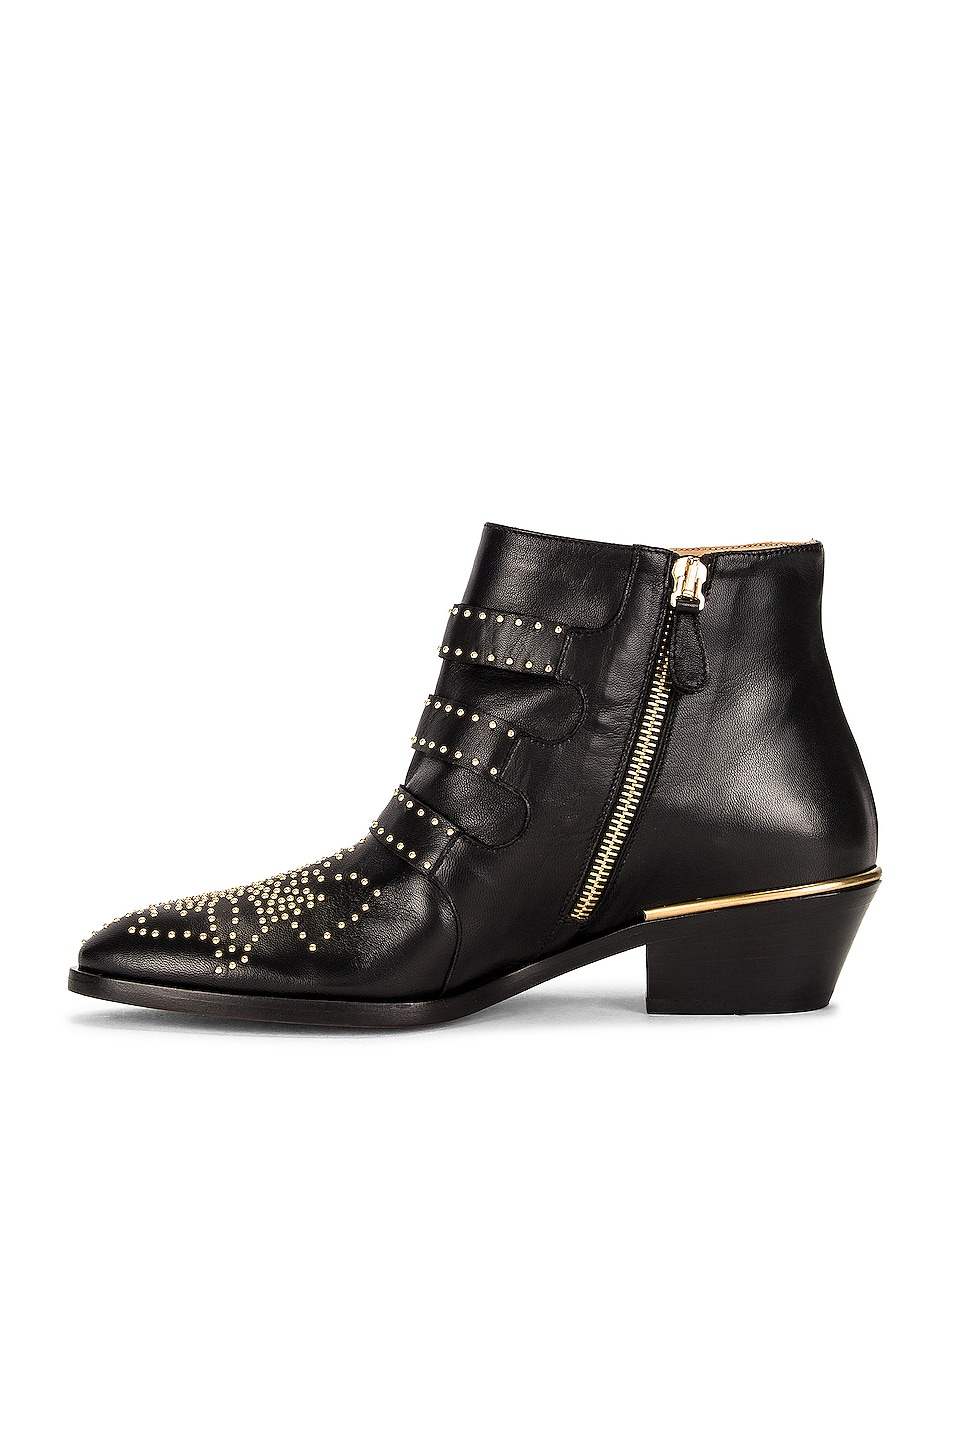 Image 5 of Chloe Susanna Leather Studded Booties in Black